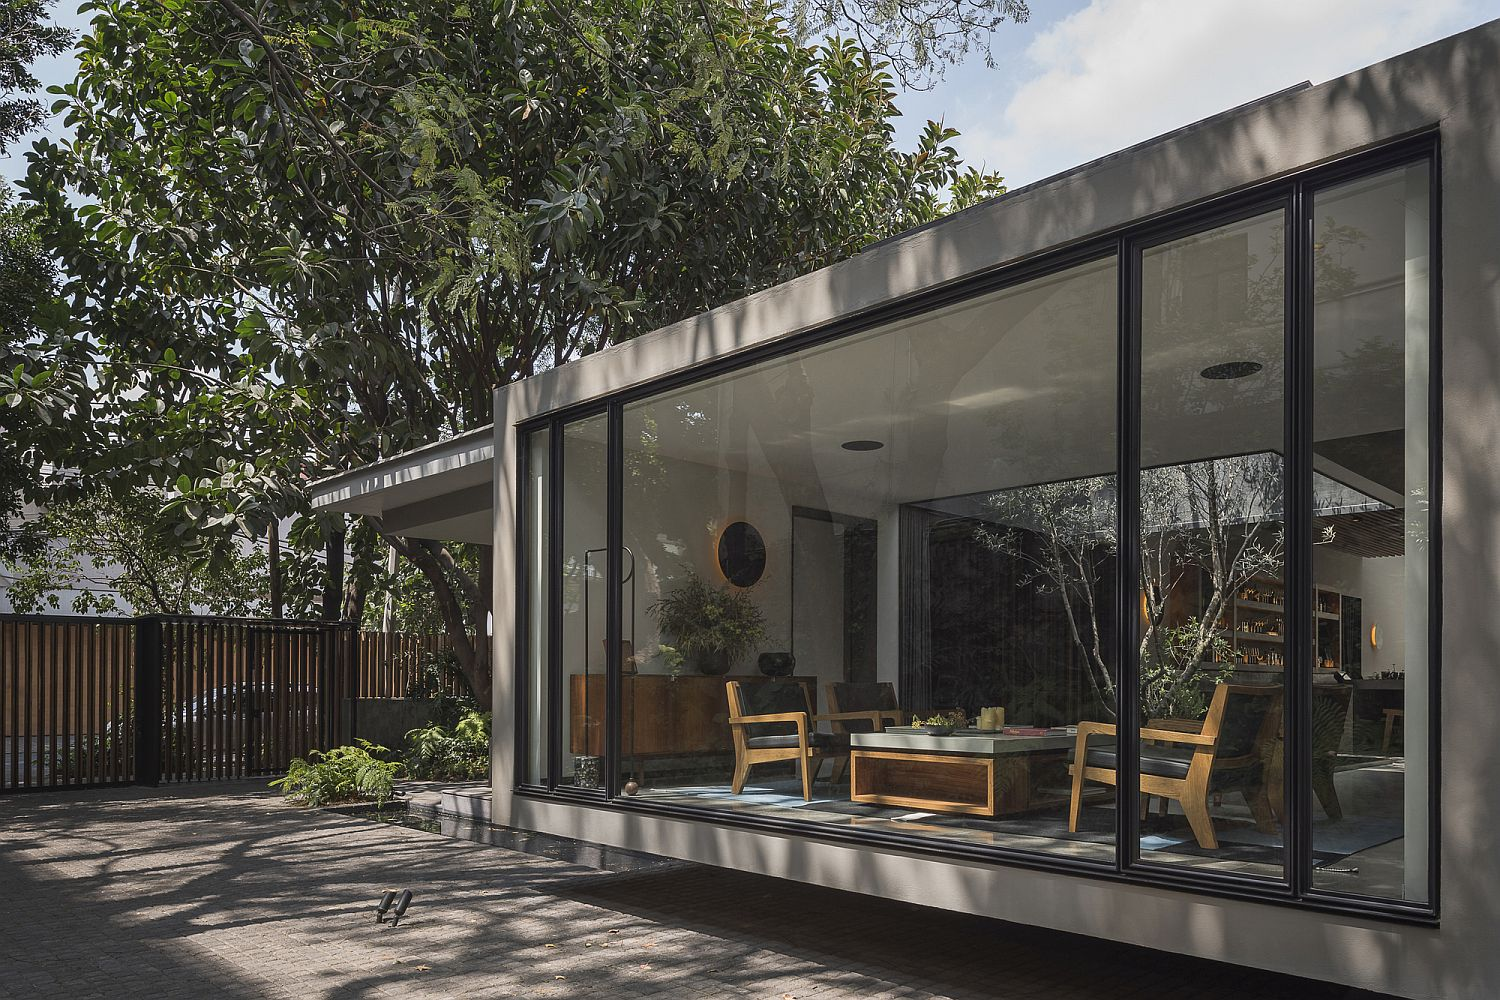 Large-sliding-glass-doors-and-walls-connect-the-restaurant-with-the-outdoors